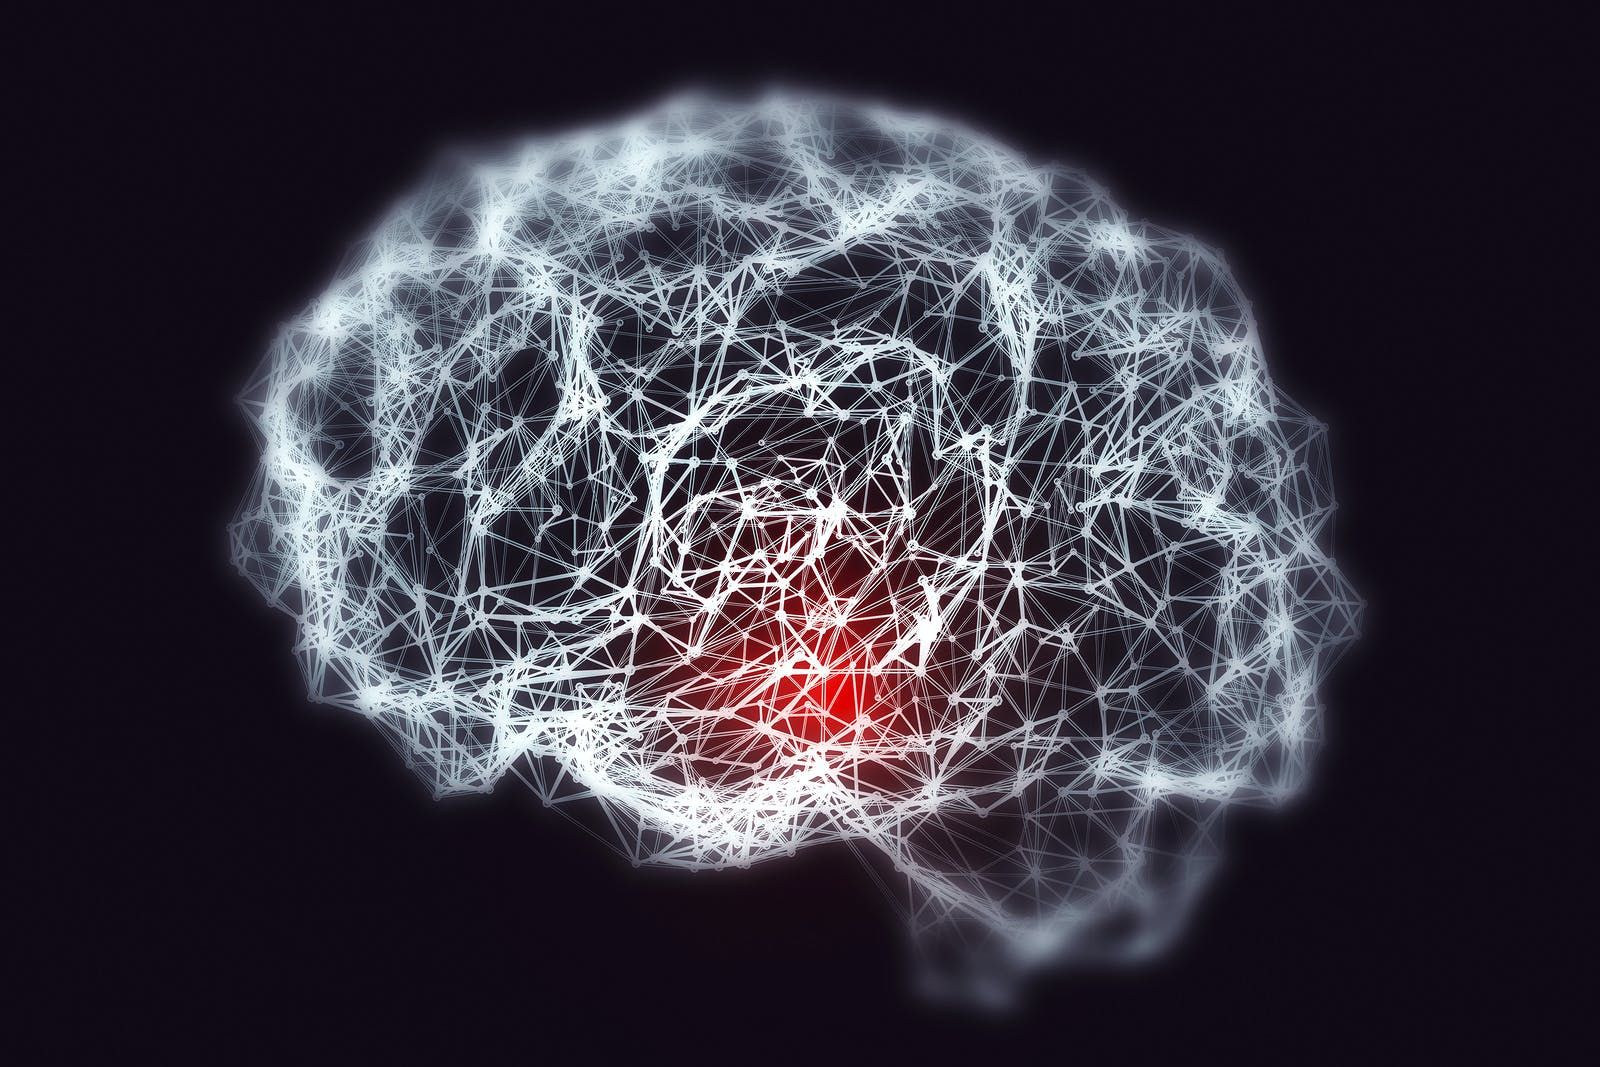 Dementia and Alzheimer's disease medical concept, 3D illustration. Memory loss, brain aging. Conceptual image showing blurred brain with loss of neuronal networks